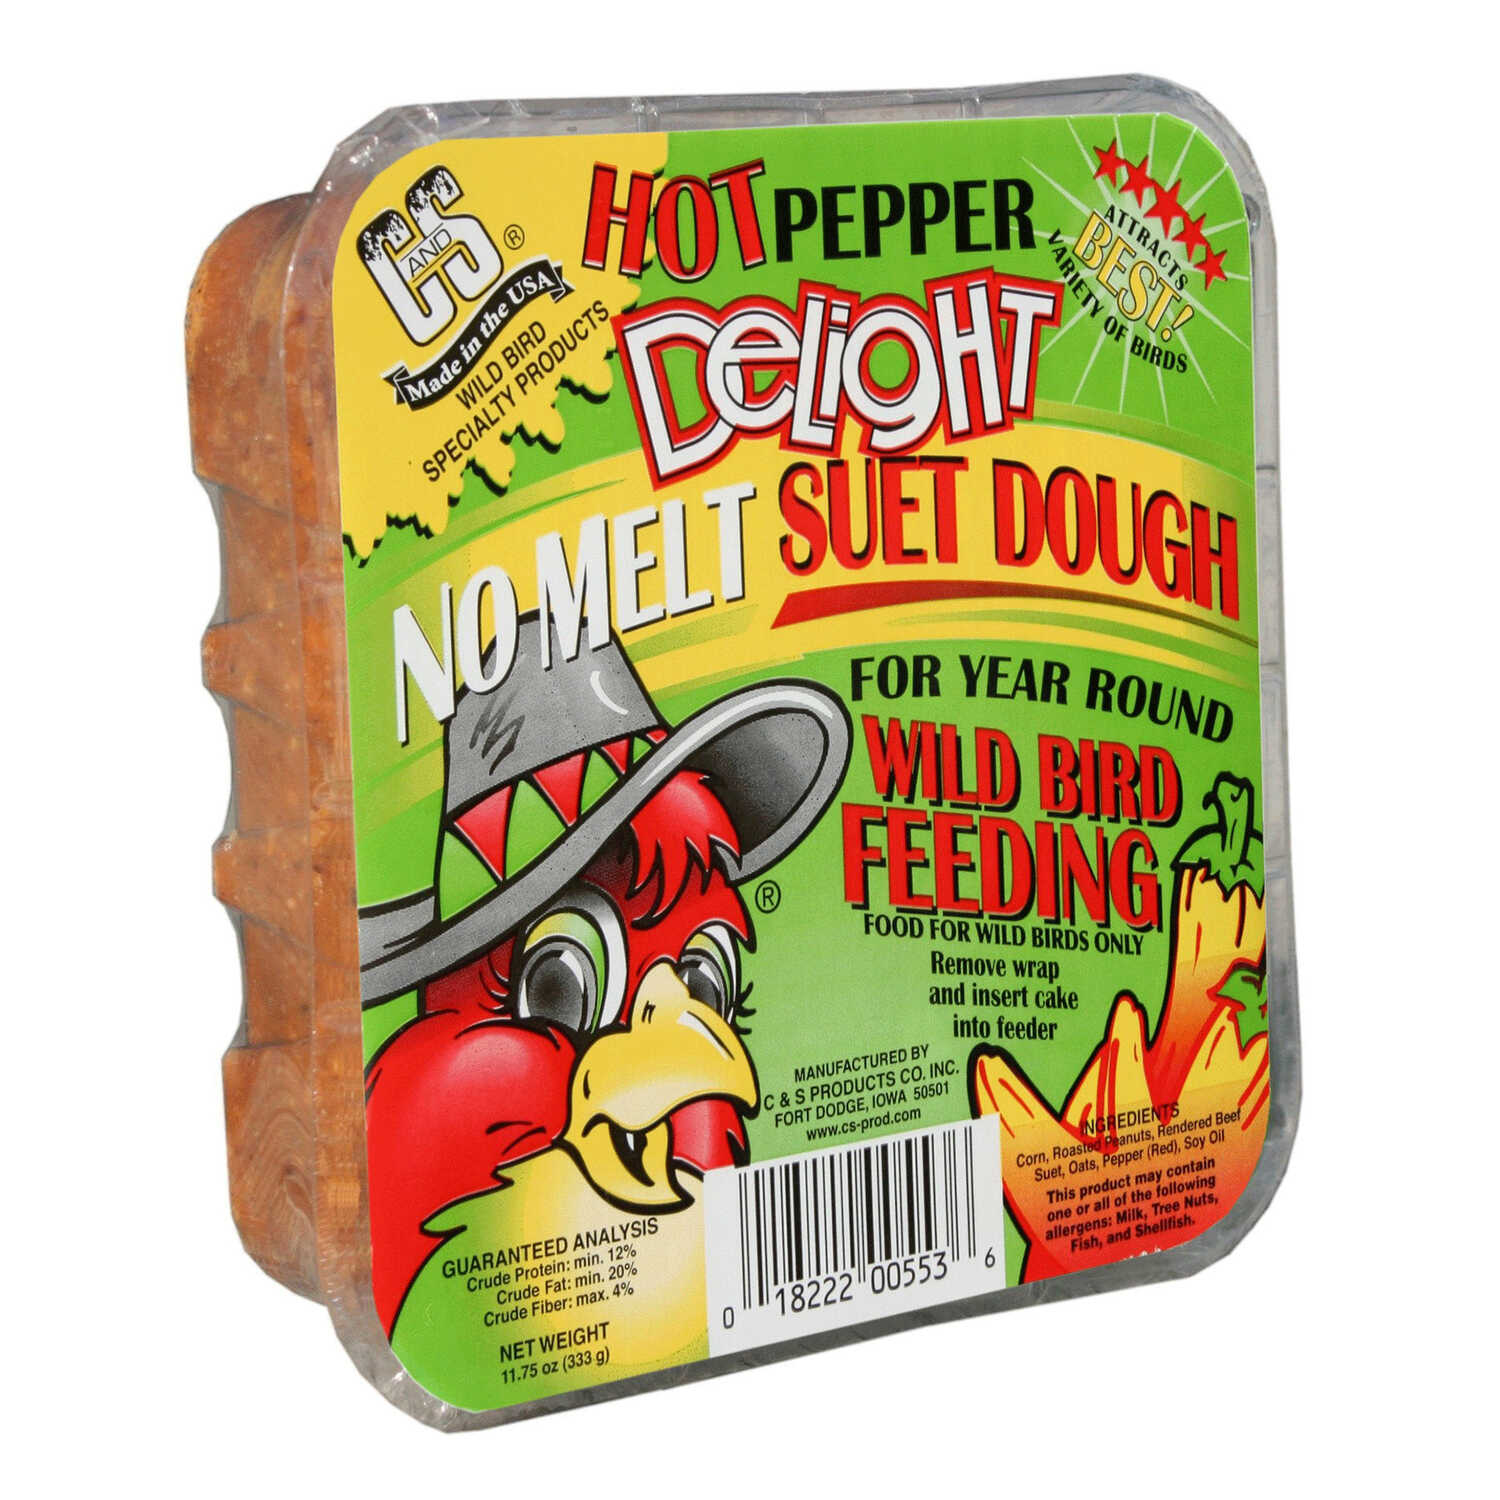 C&S Products  Hot Pepper Delight  Assorted Species  Wild Bird Food  Beef Suet  11.75 oz.